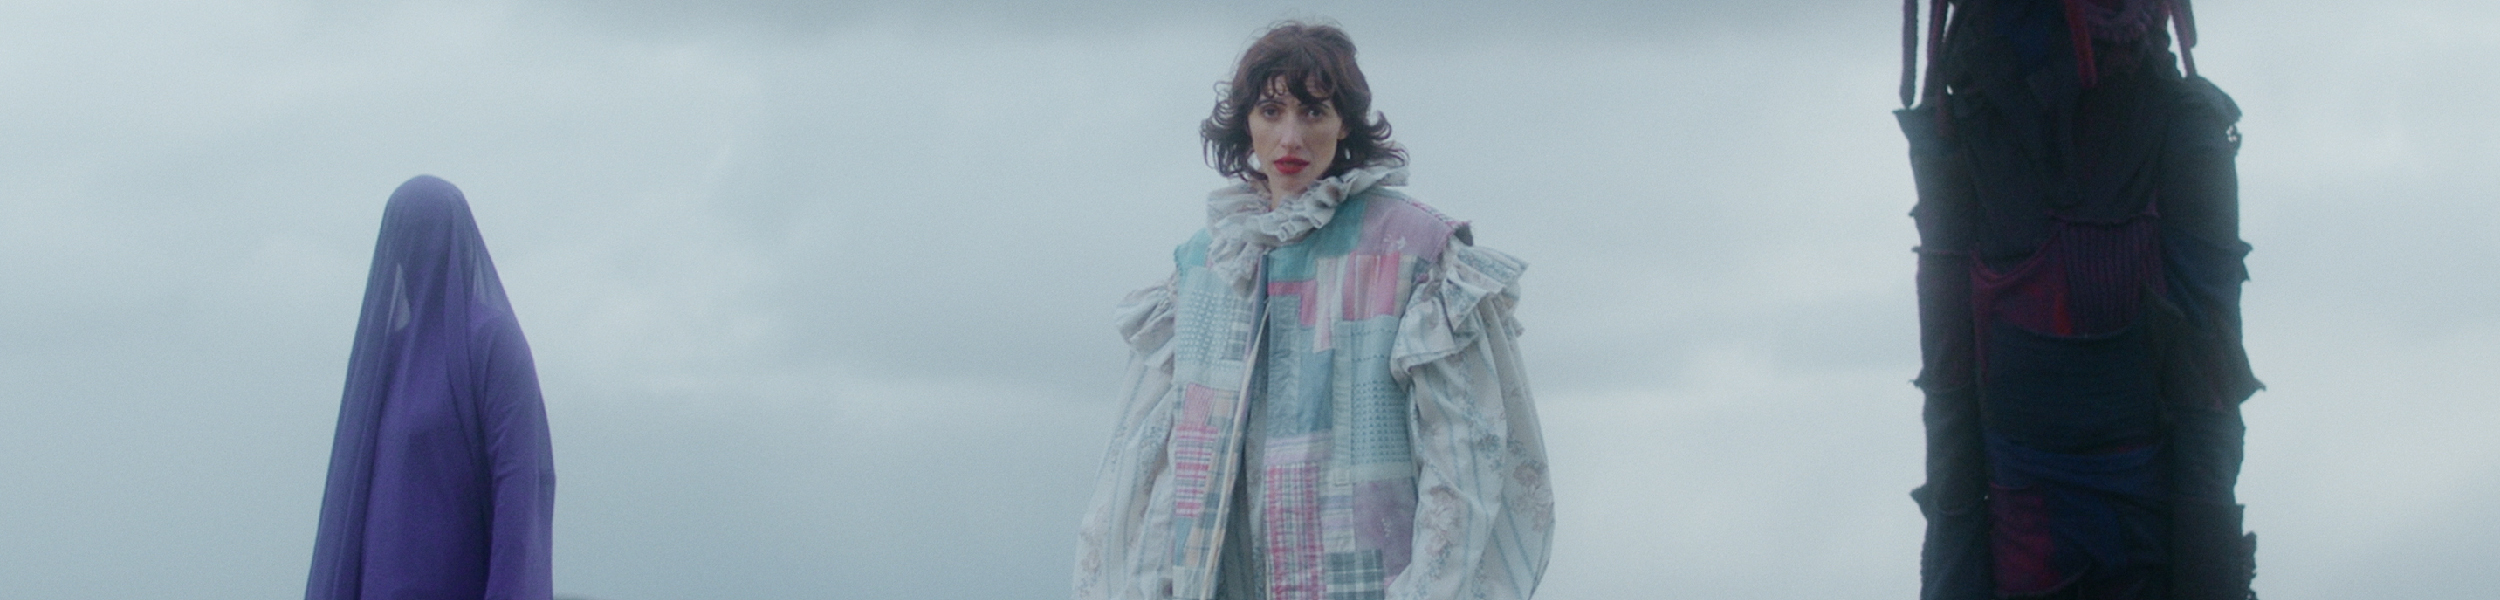 Aldous Harding - New Video For 'Zoo Eyes' And Worldwide Tour Dates